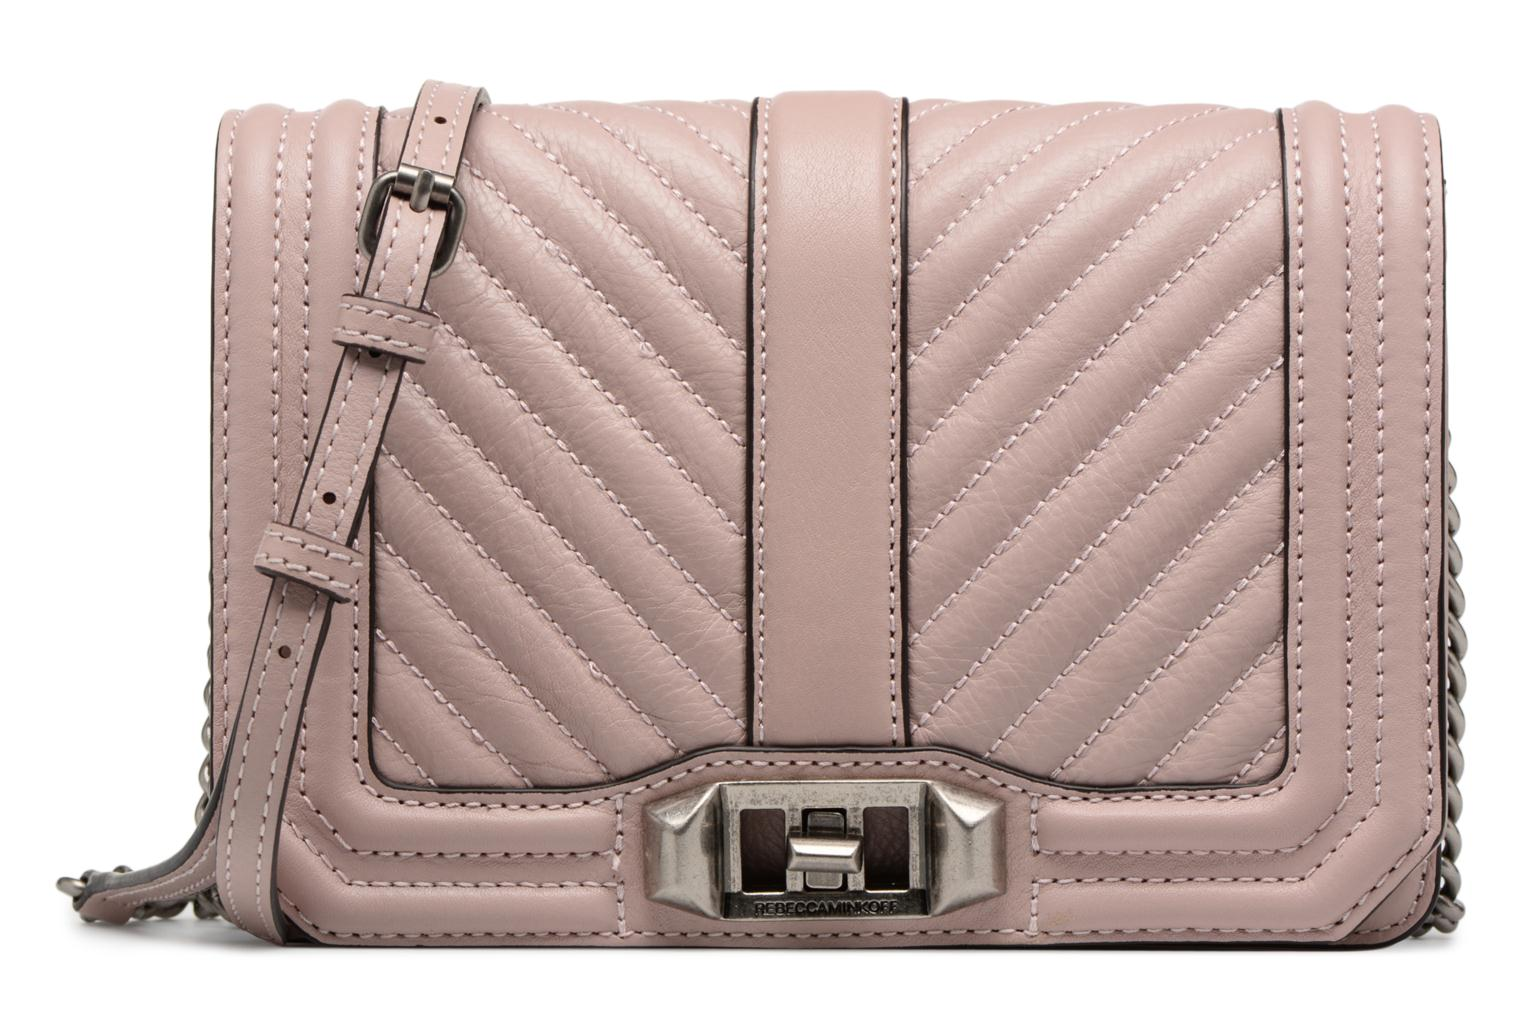 Chevron Quilted Small Love Crossbody VINTAGE PINK 301V